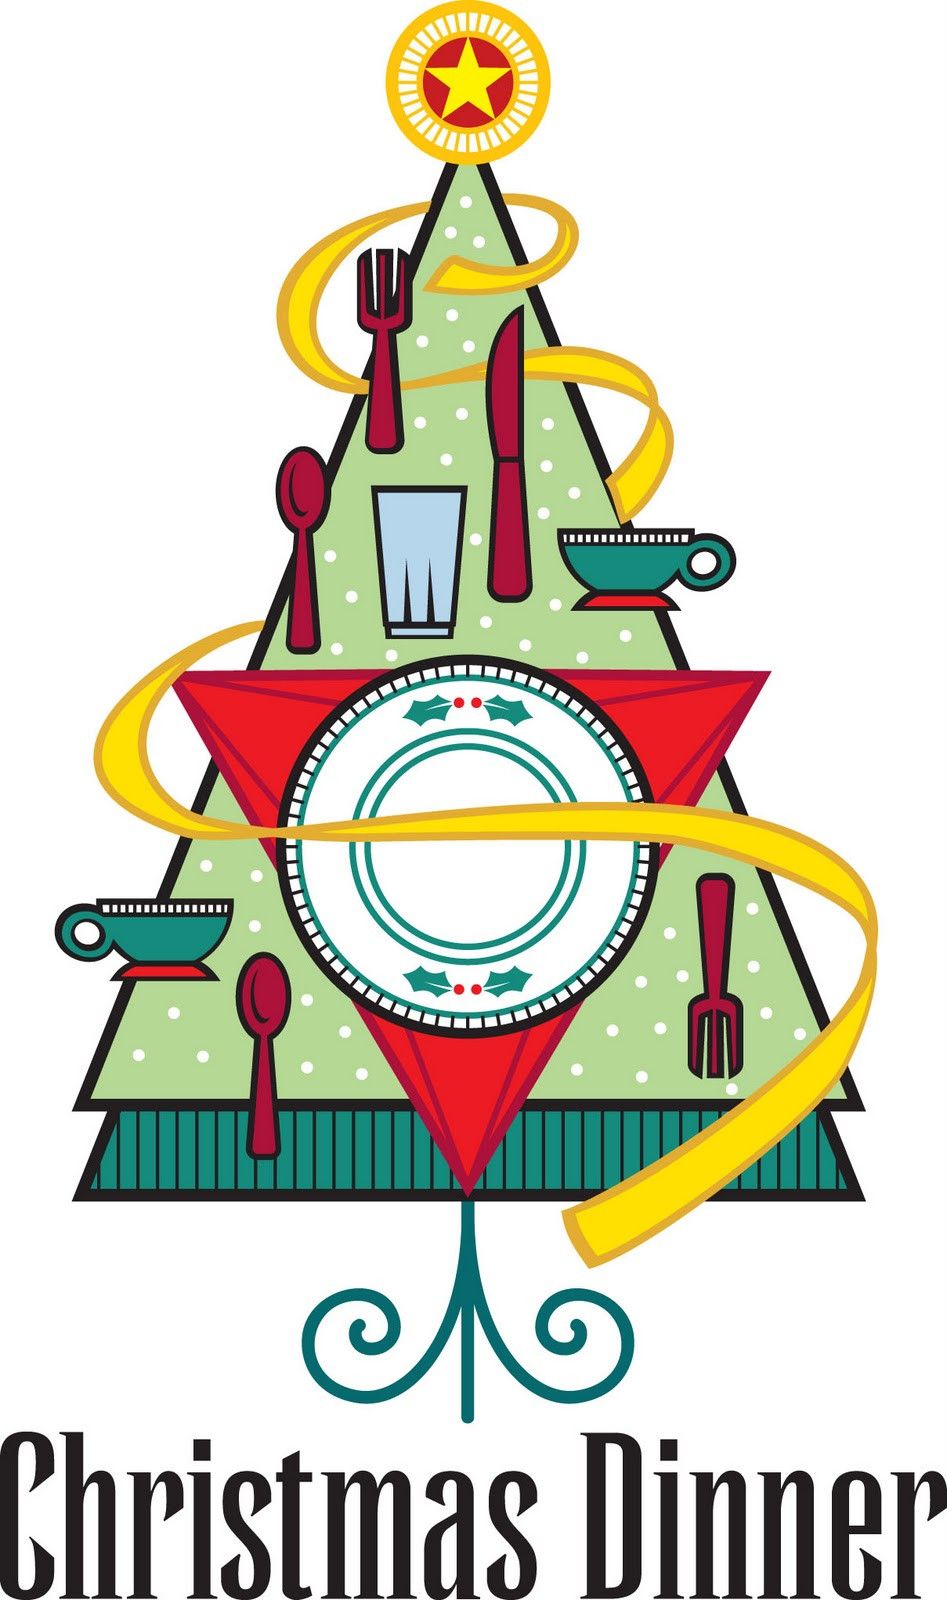 Christmas Dinner Clipart  First United Methodist Church Knoxville Iowa DECEMBER